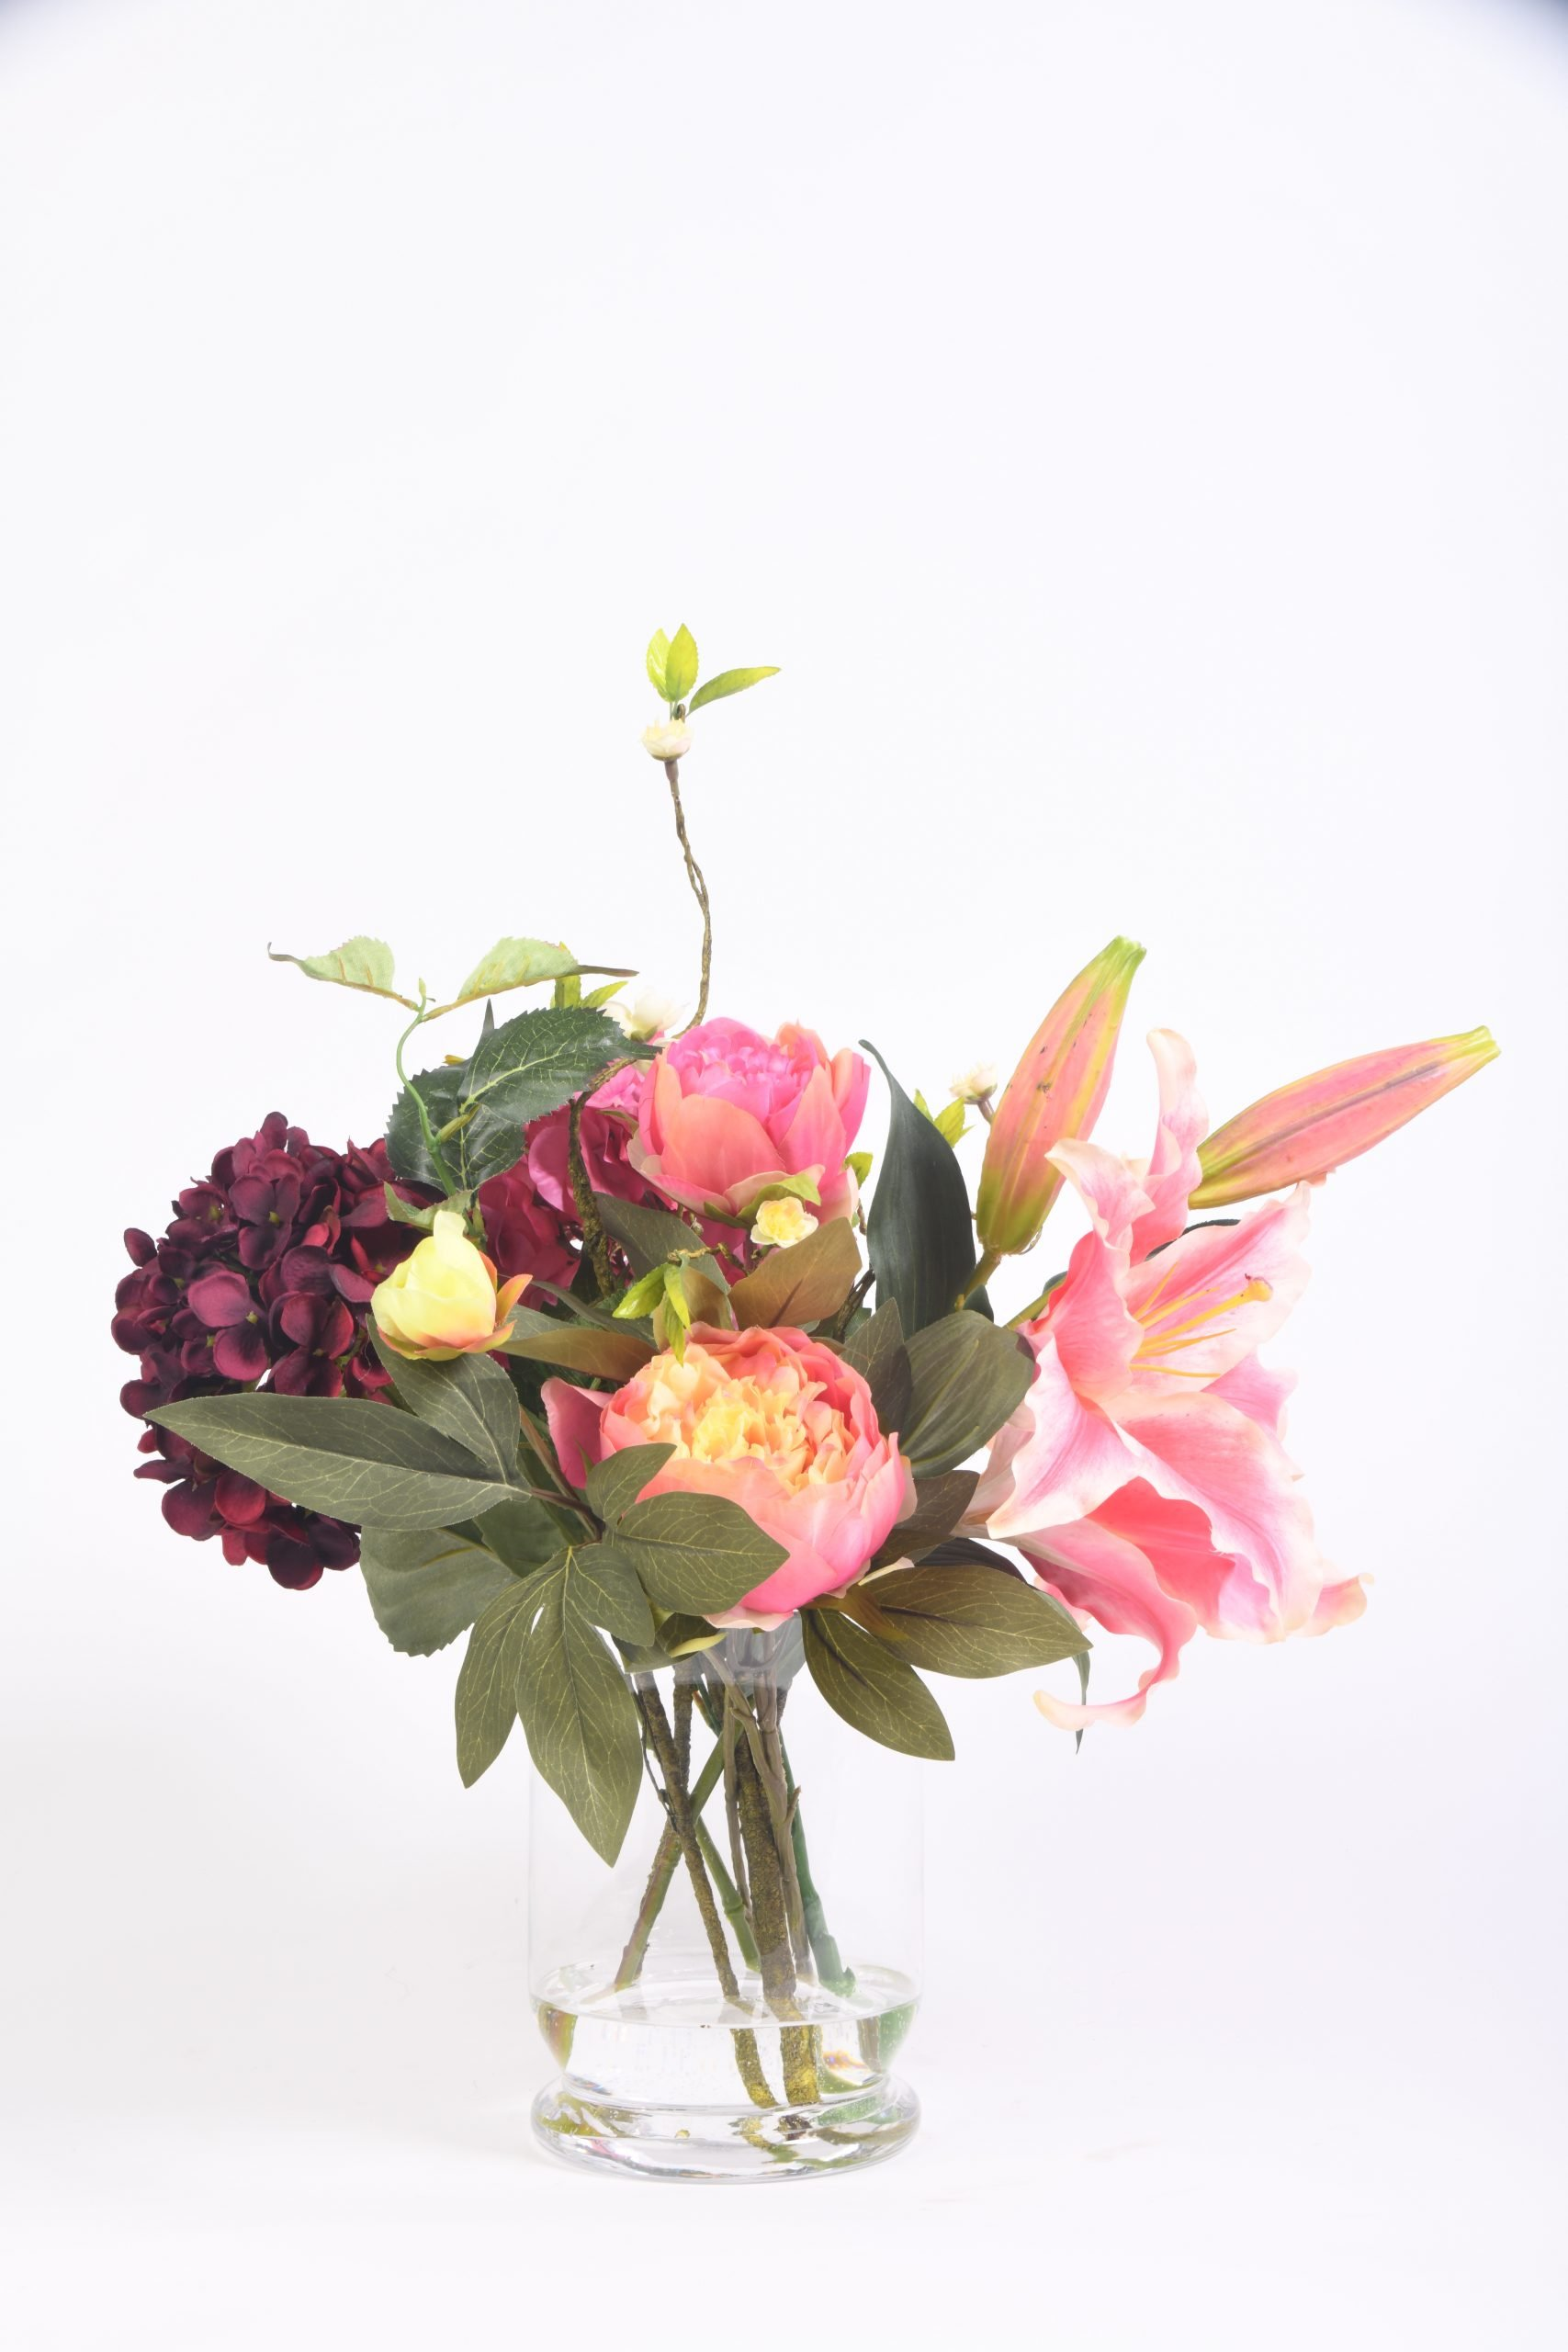 Poppies, Lilies, and Hydrangeas in a Glass Vase